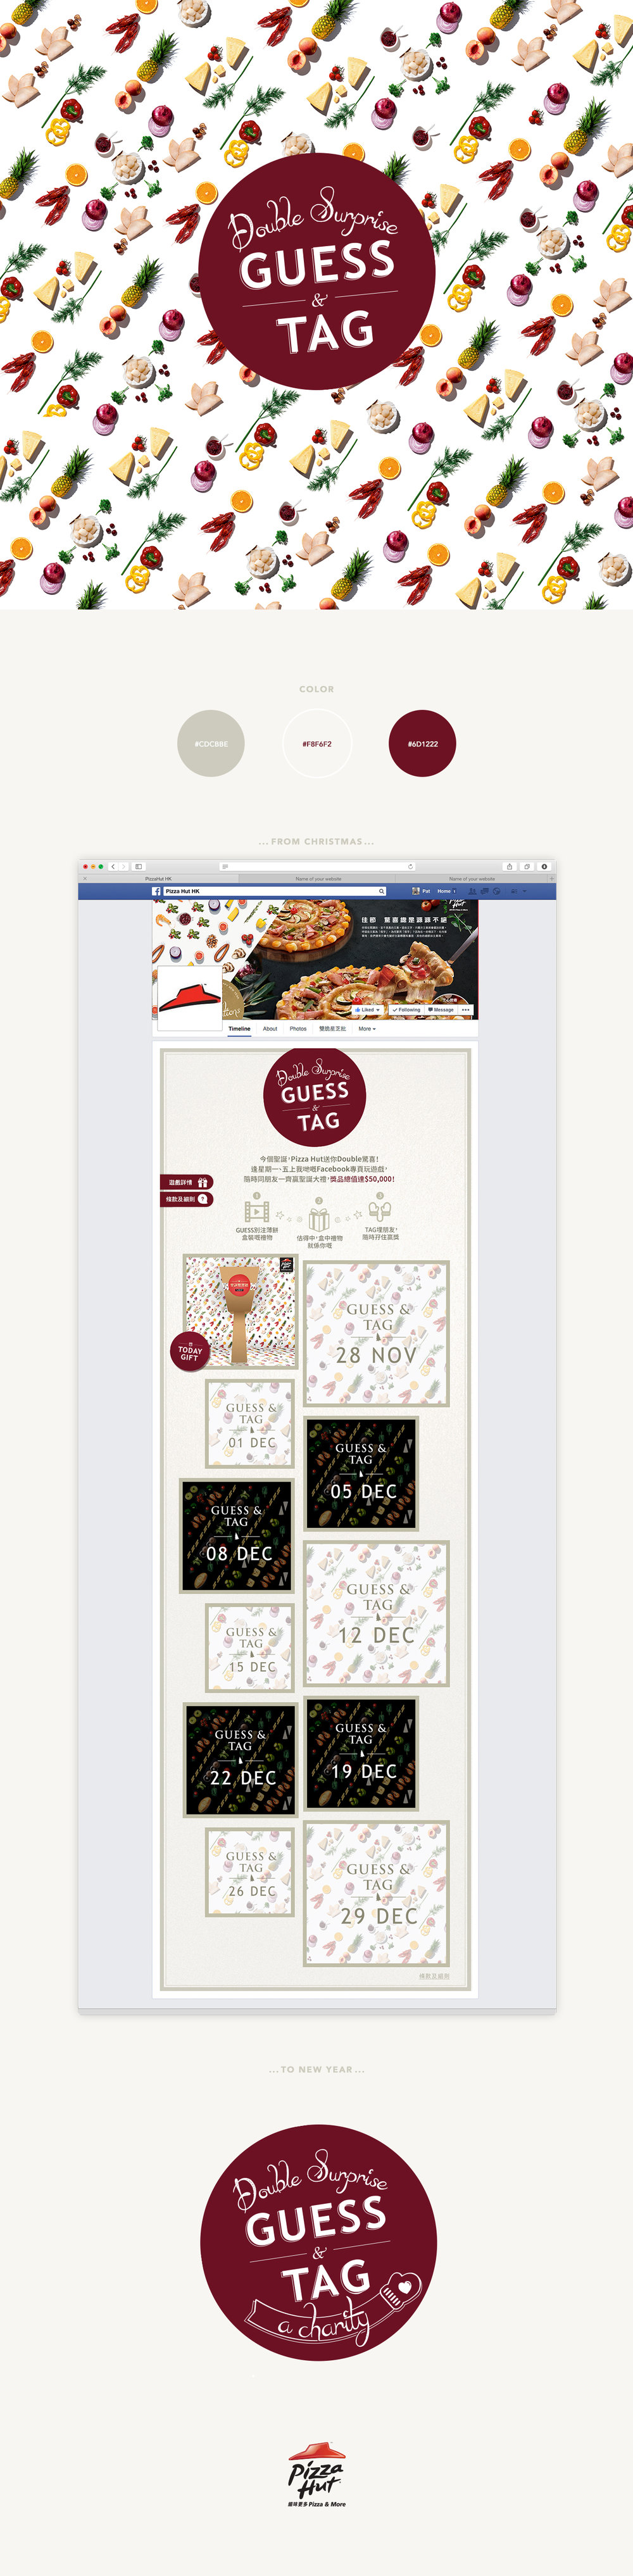 Pizza hunt Xmas and New Year promotion — HI: I\'m Pat